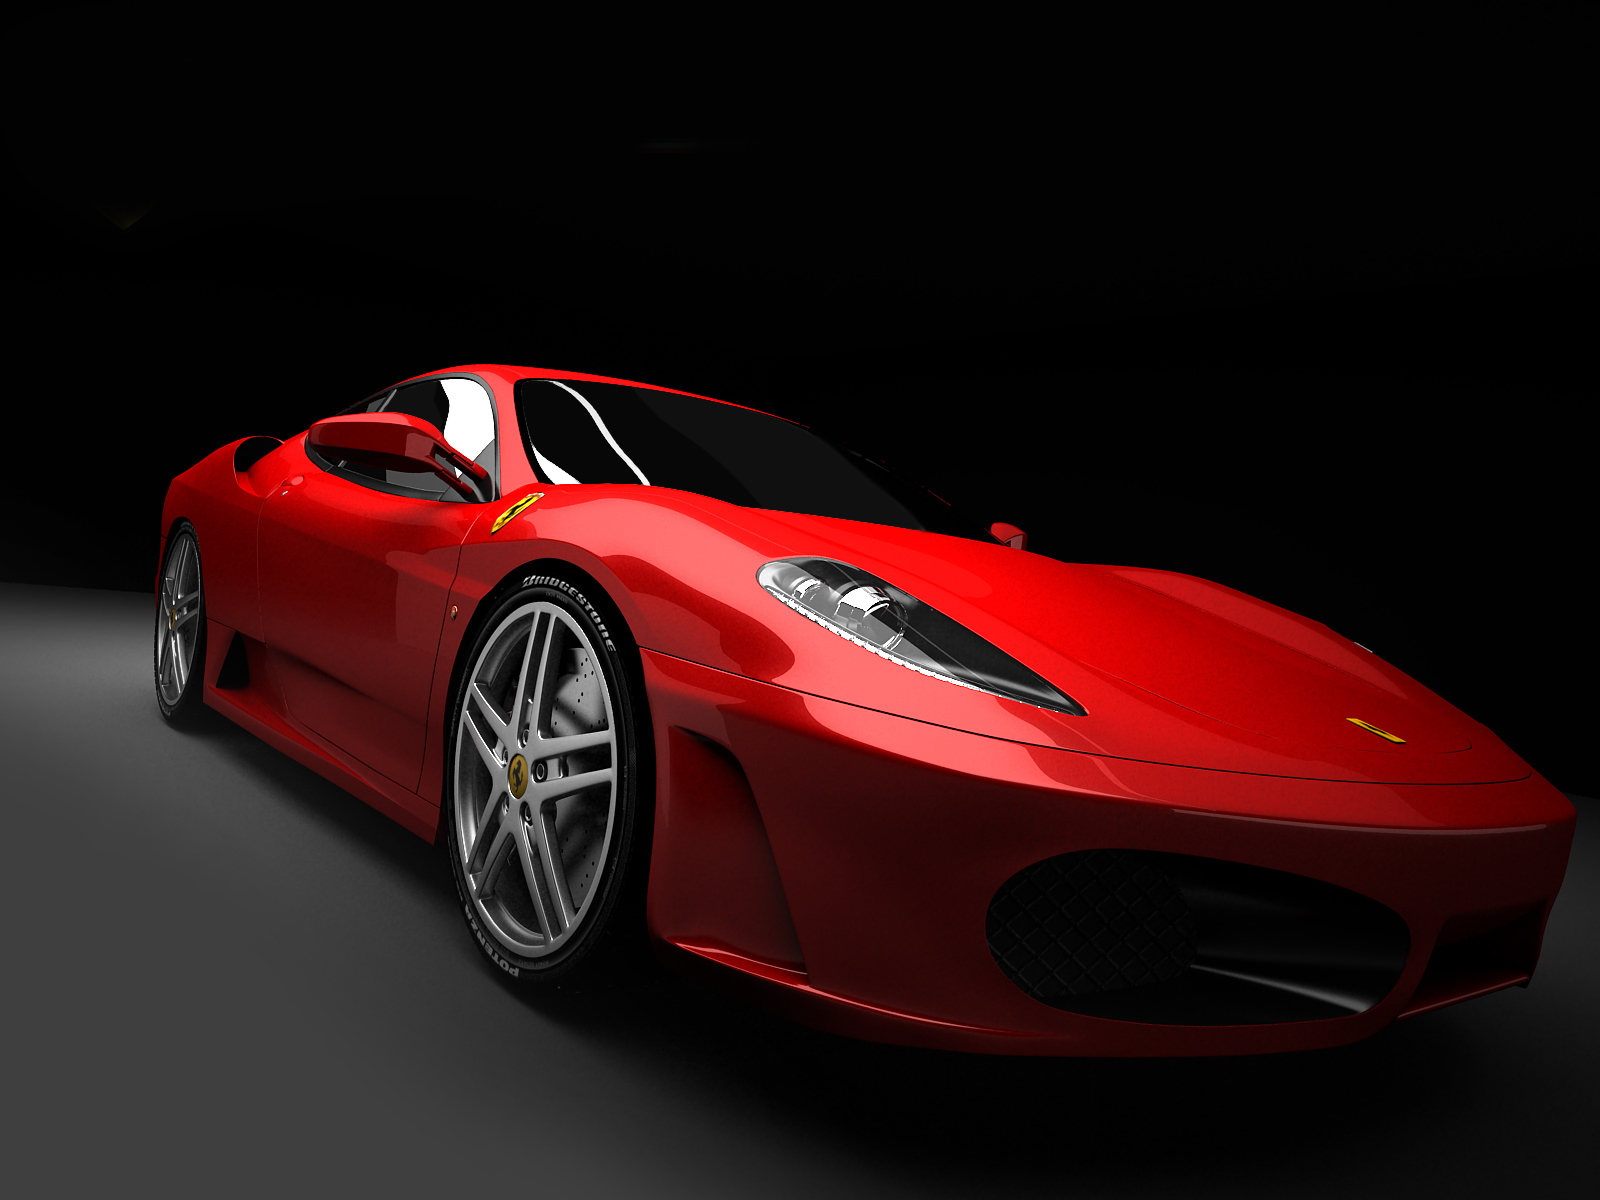 Ferrari F430 RED 1046.23 Kb